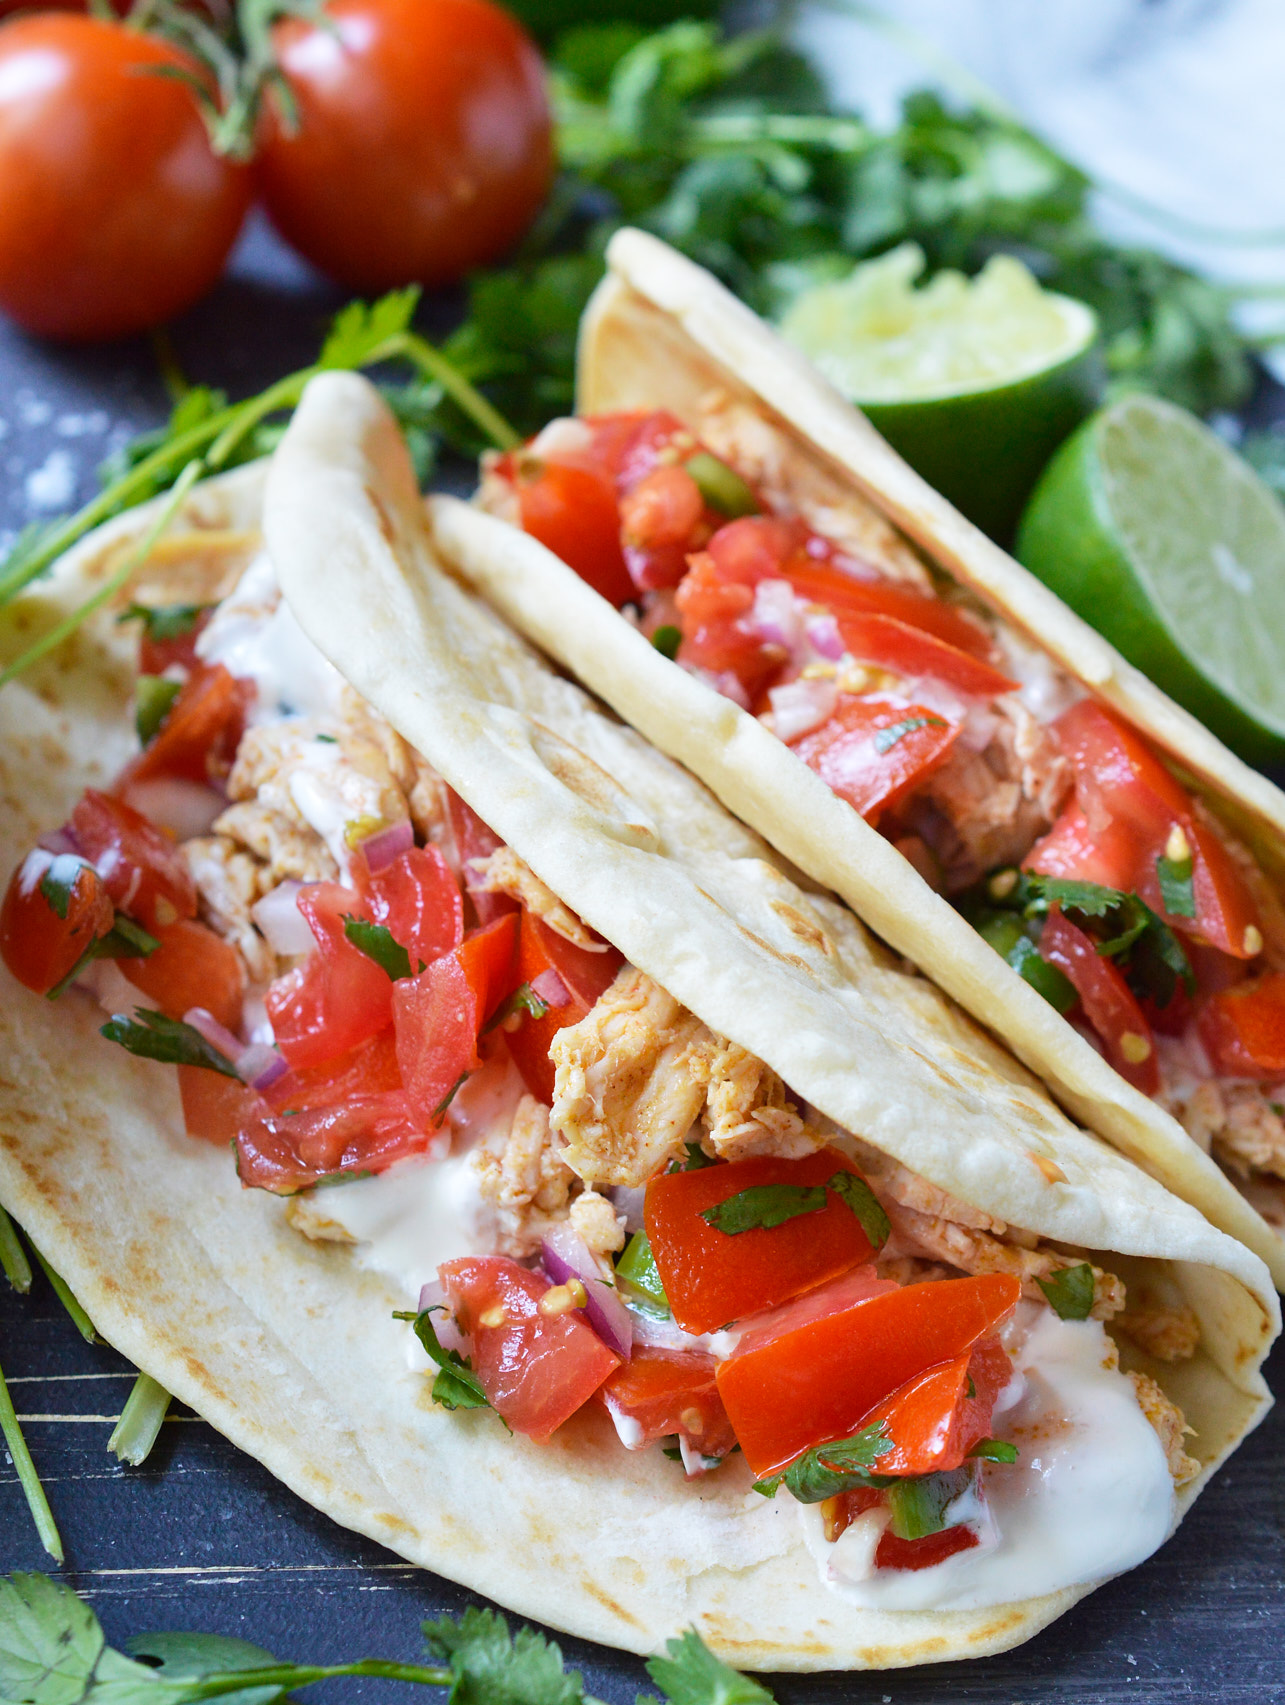 Start the summer off right with Fresh Homemade Pico de Gallo Recipe that is spiked with Tequila. Perfect for a party appetizer or a tasty snack by the pool!